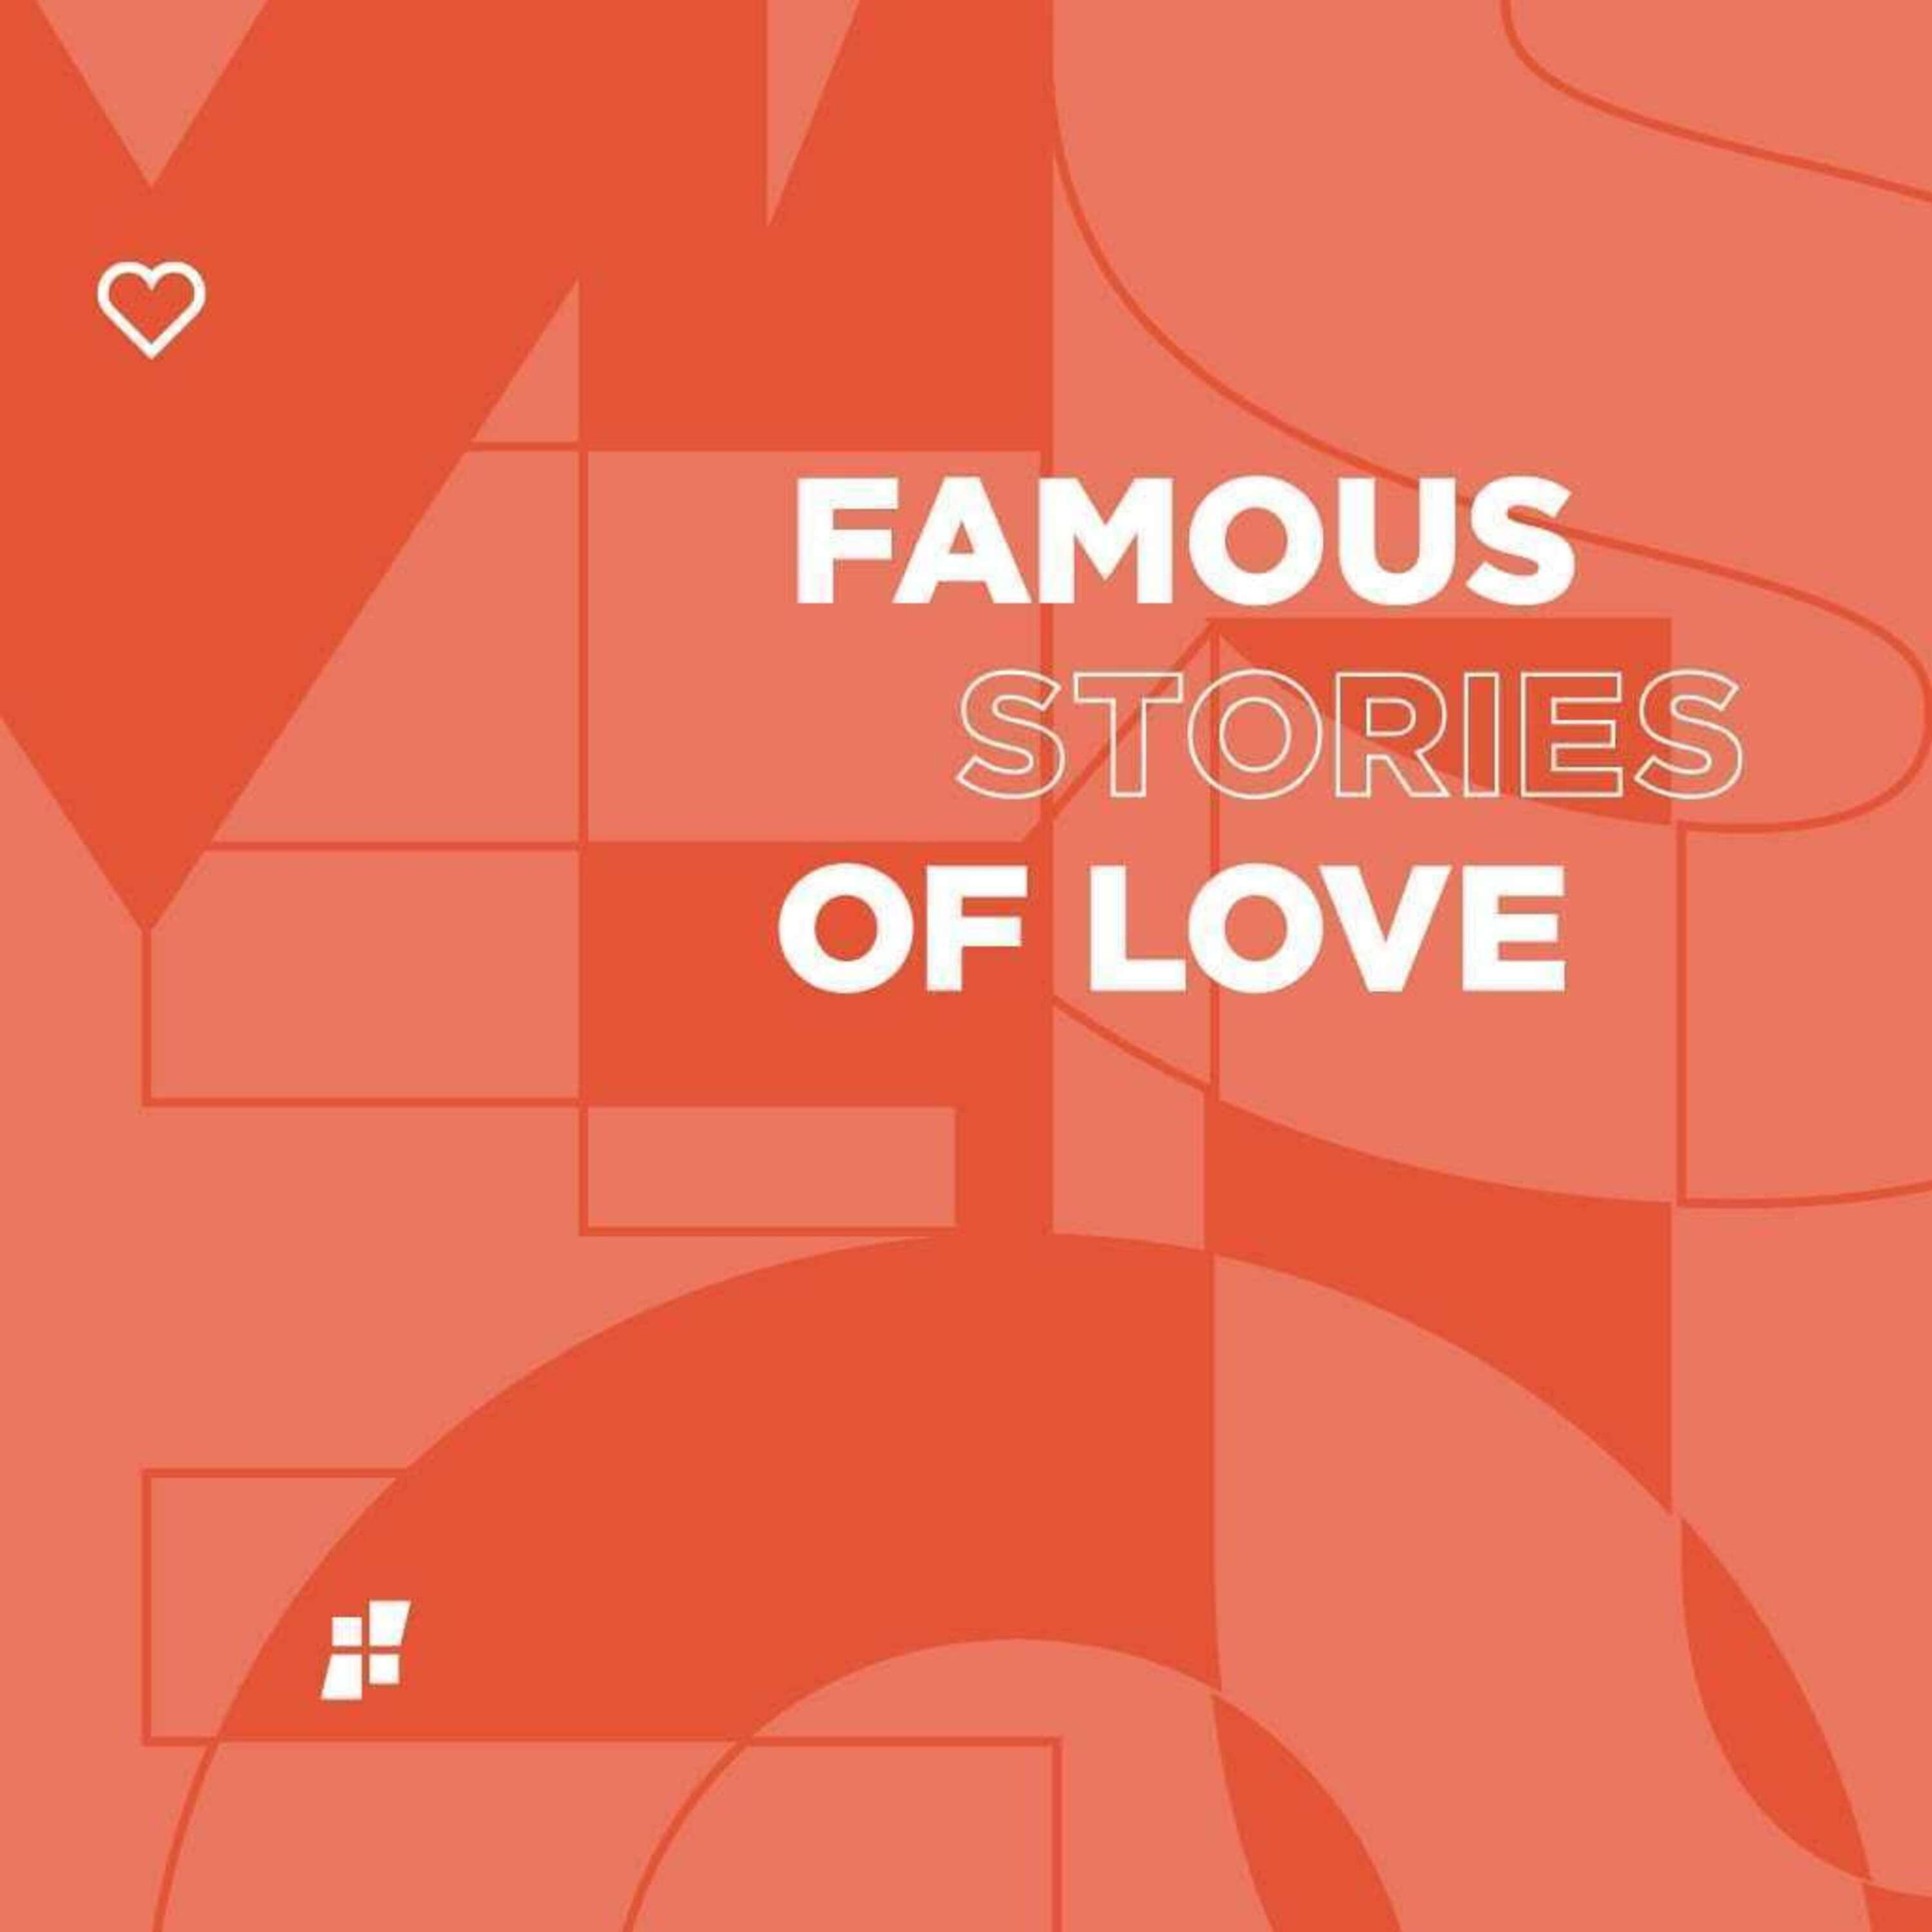 Famous Stories of Love - The Rich Young Ruler